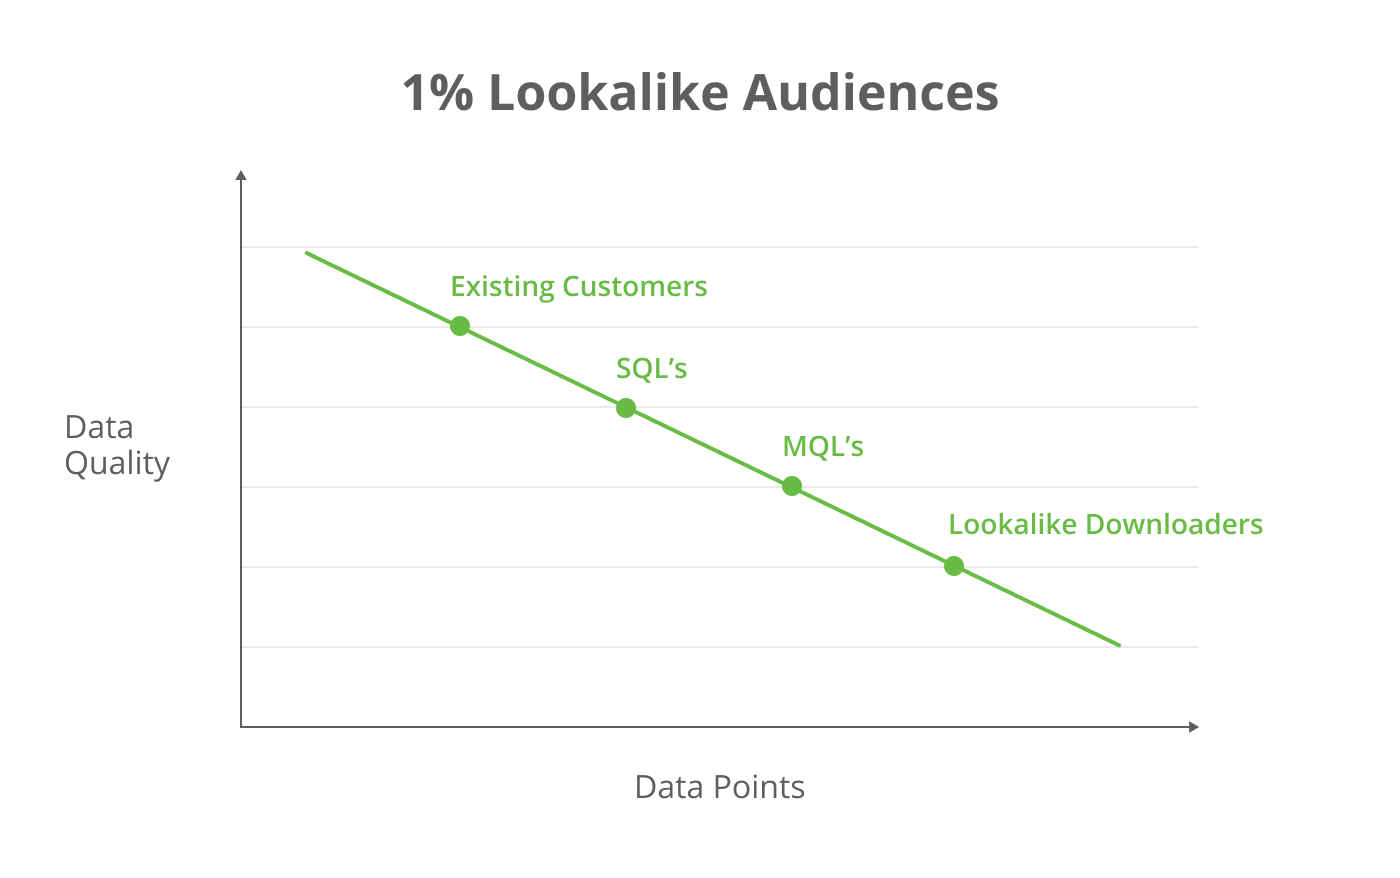 Data quality vs data points for Facebook 1% lookalike audiences.